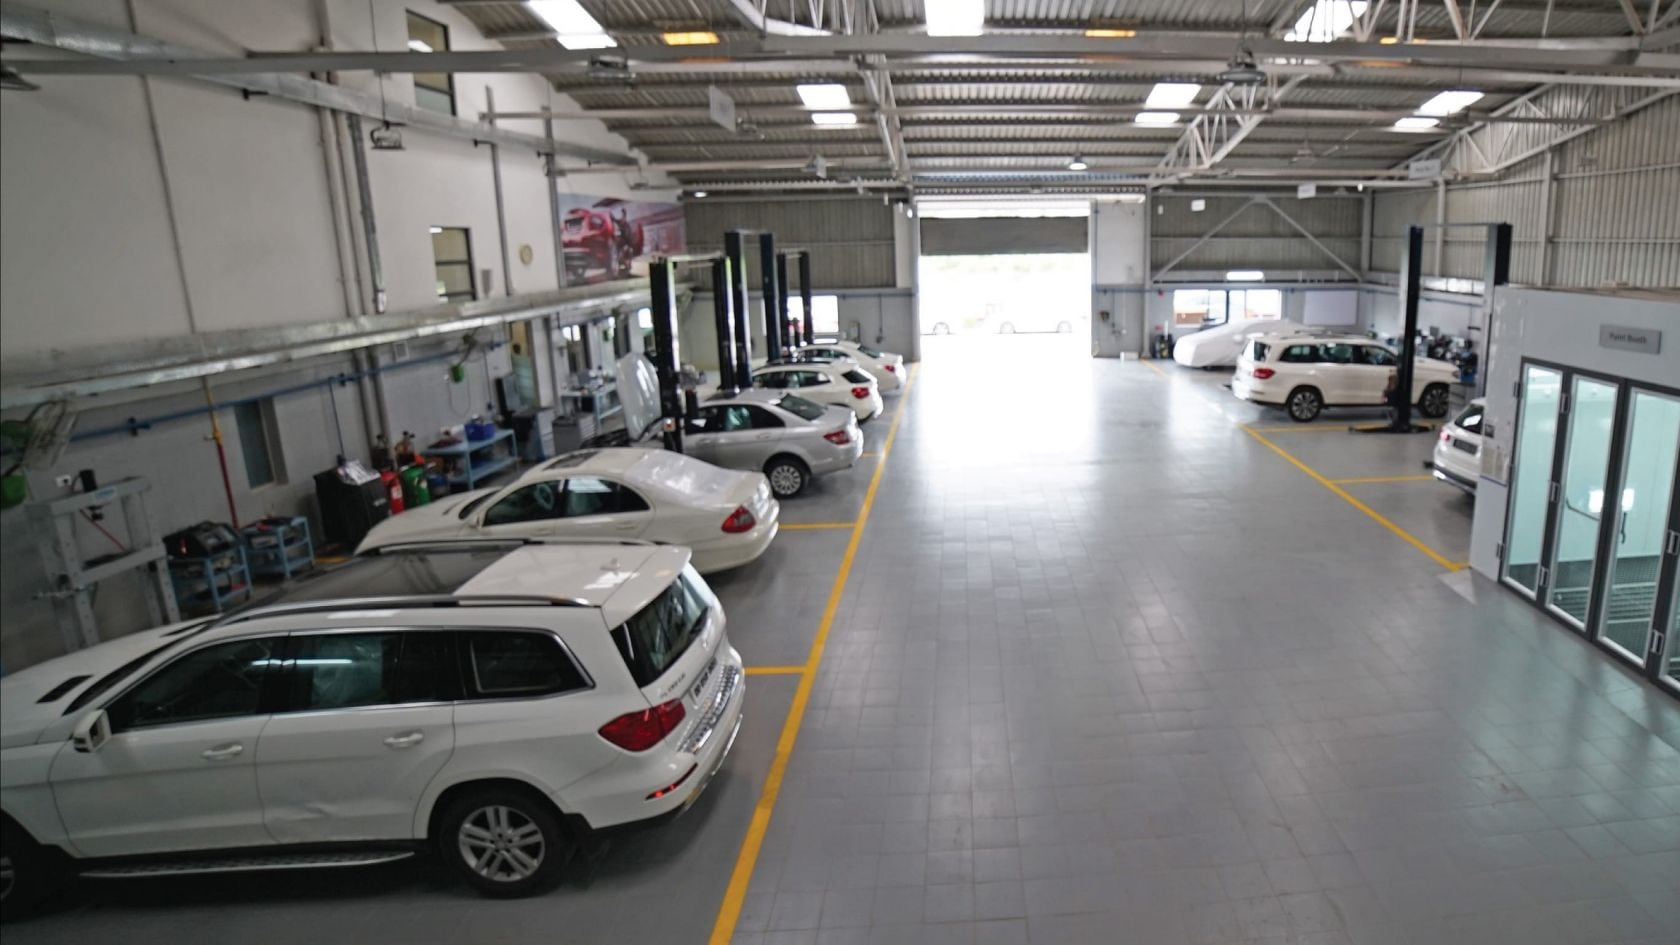 Mercedes Benz India Continues Its Network Expansion In The Emerging Markets Inaugurates One Of The Largest